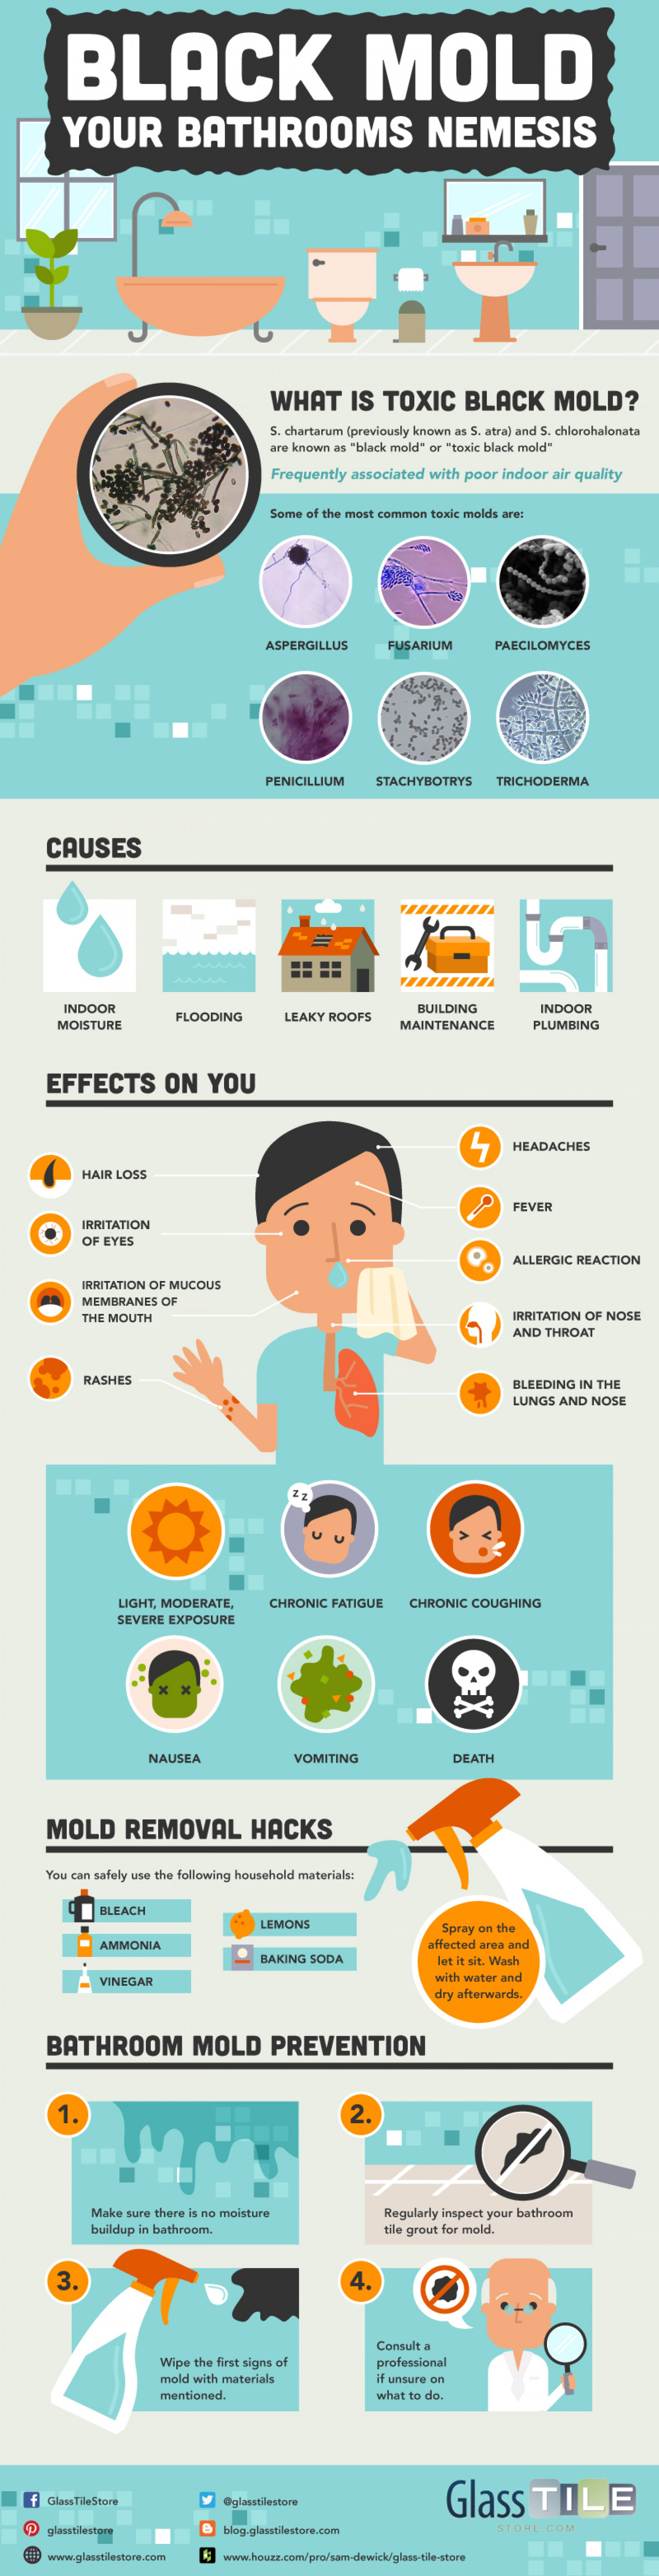 Black Mold: Your Bathrooms Nemesis  Infographic